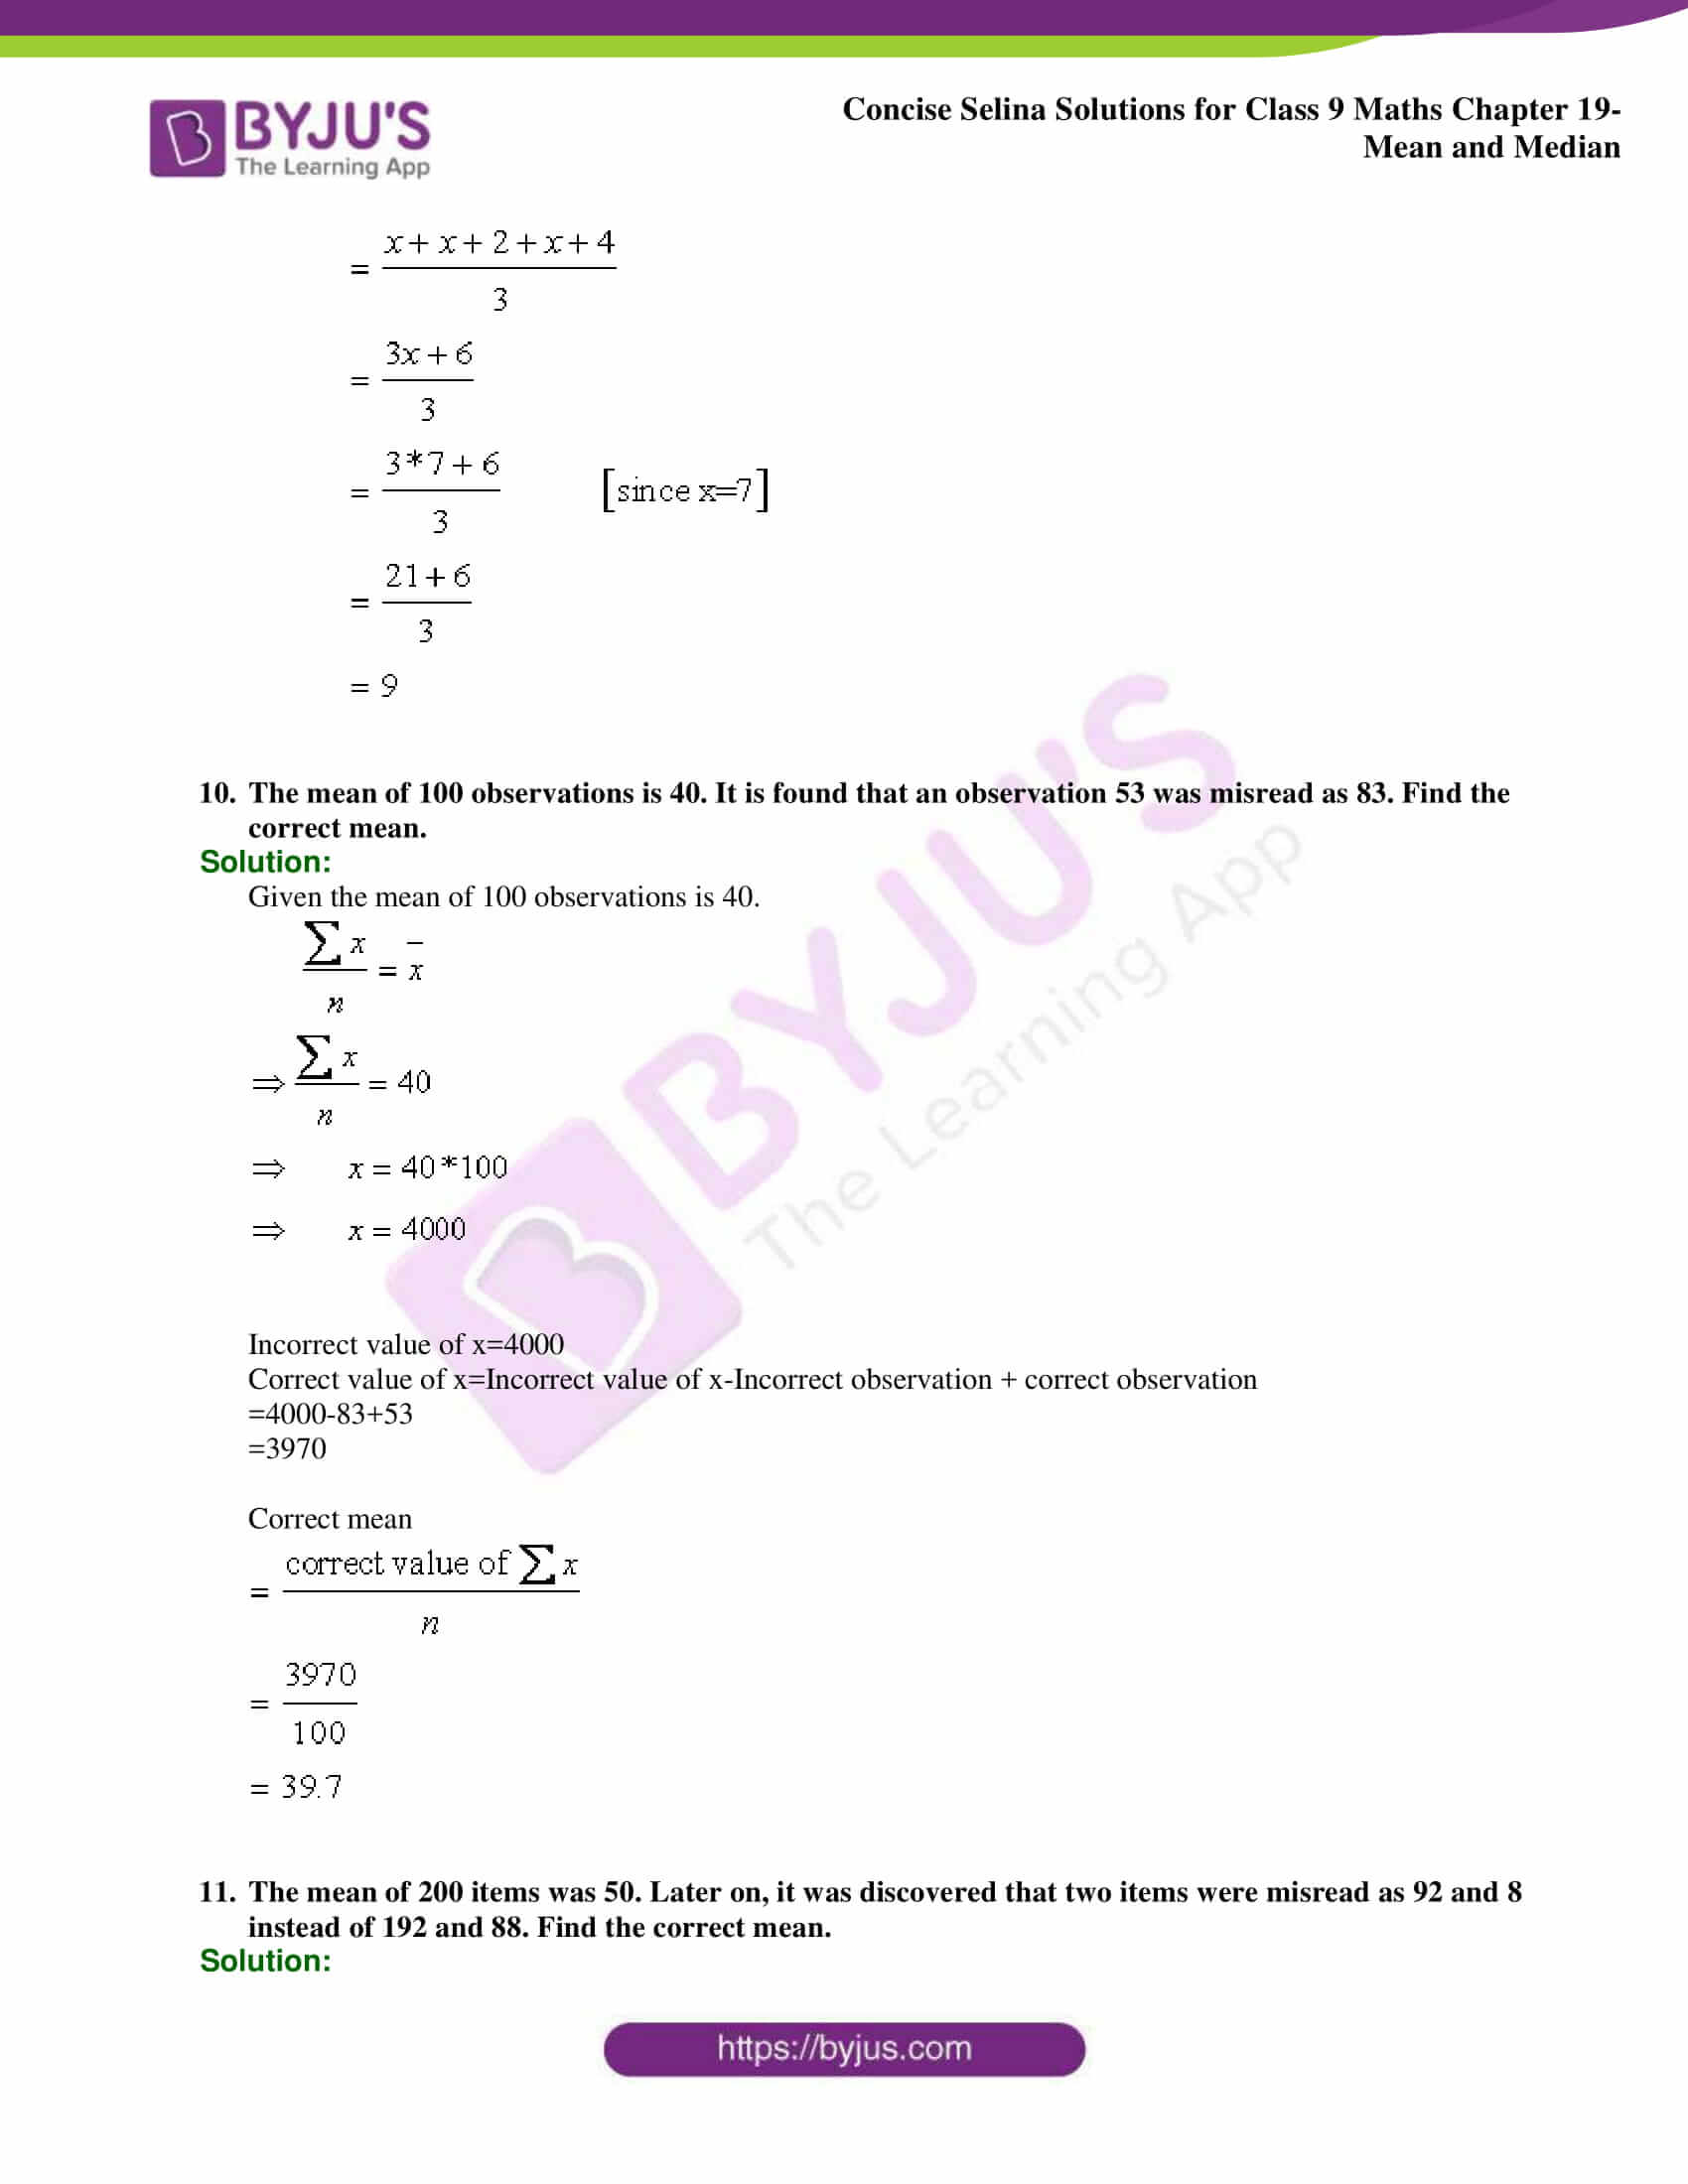 Concise Selina Solutions Class 9 Maths Chapter 19 Mean and Median part 05